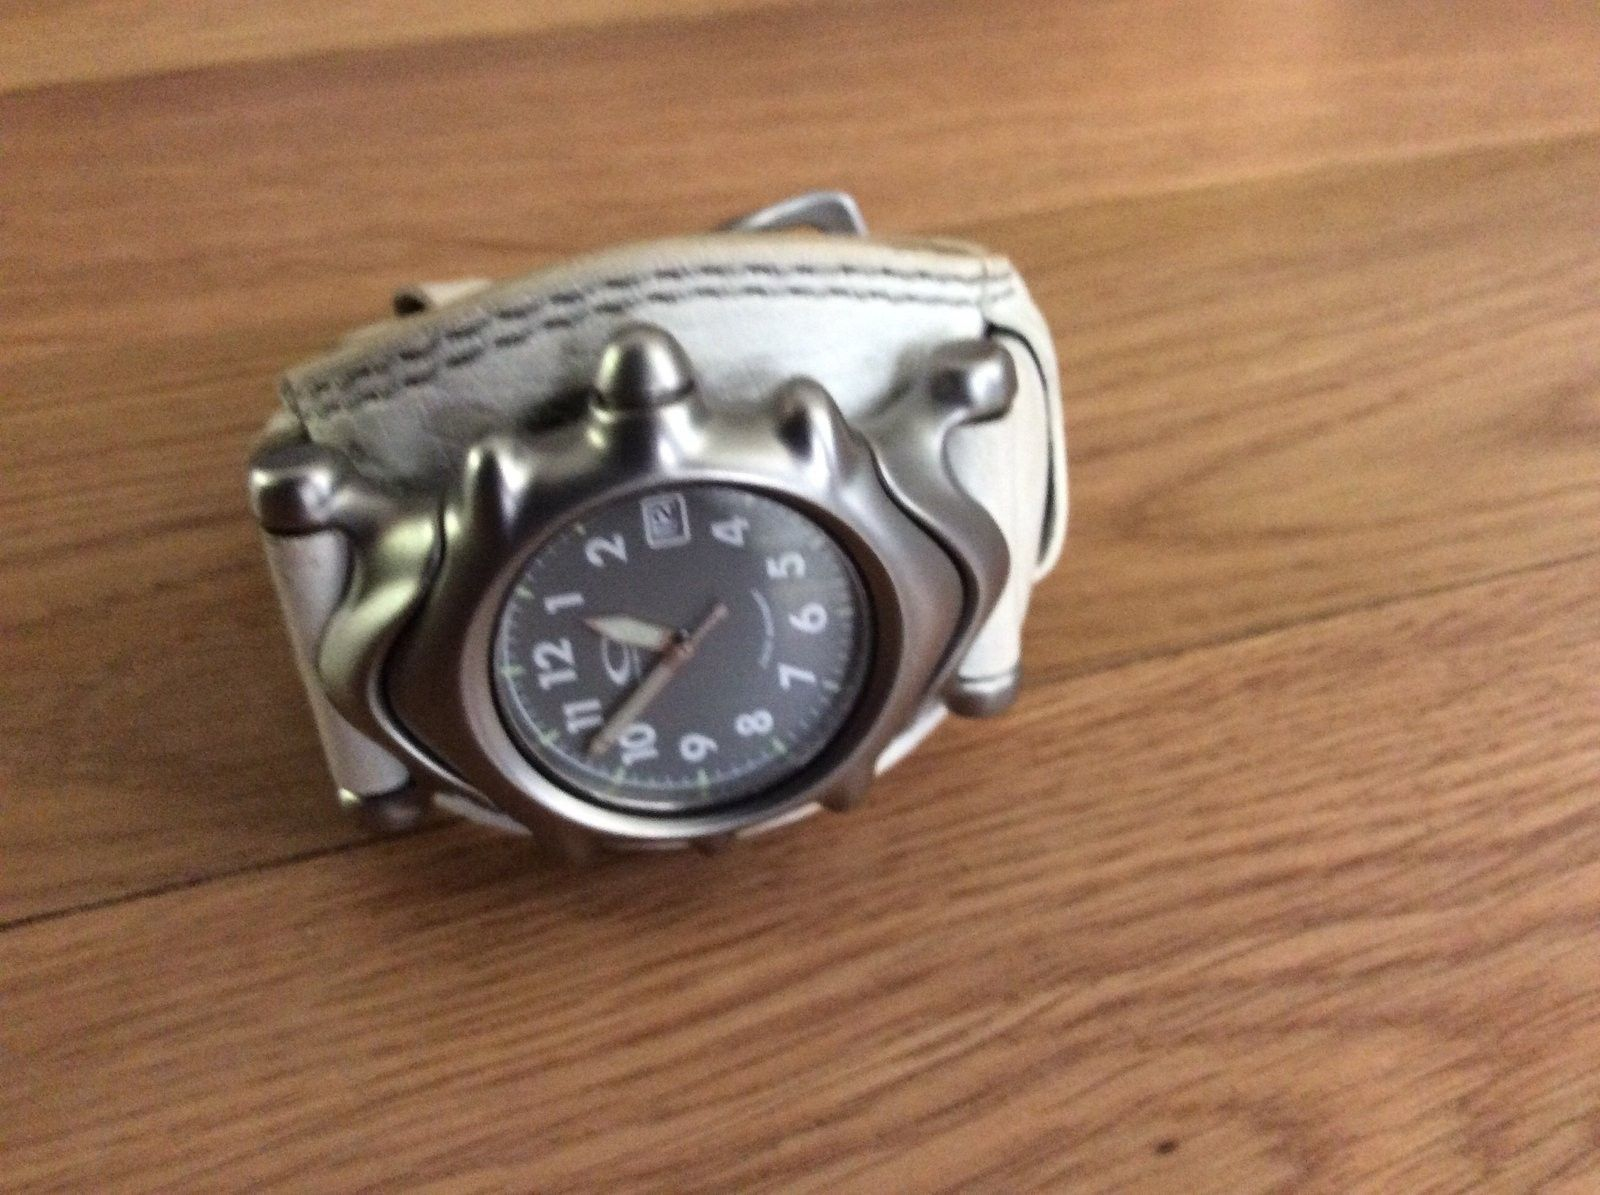 Saddleback Watch $75 shipped - image.jpg